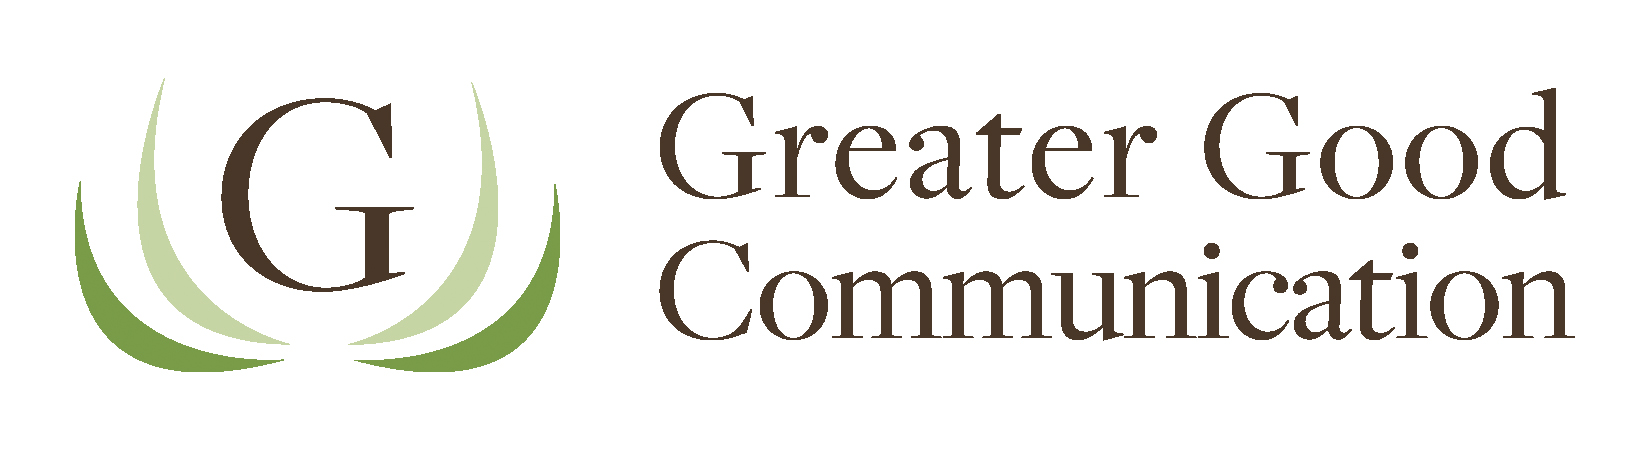 Greater Good Communication is the private consulting practice of Patti Ghezzi, serving nonprofit organizations with a goal of increasing donor engagement.